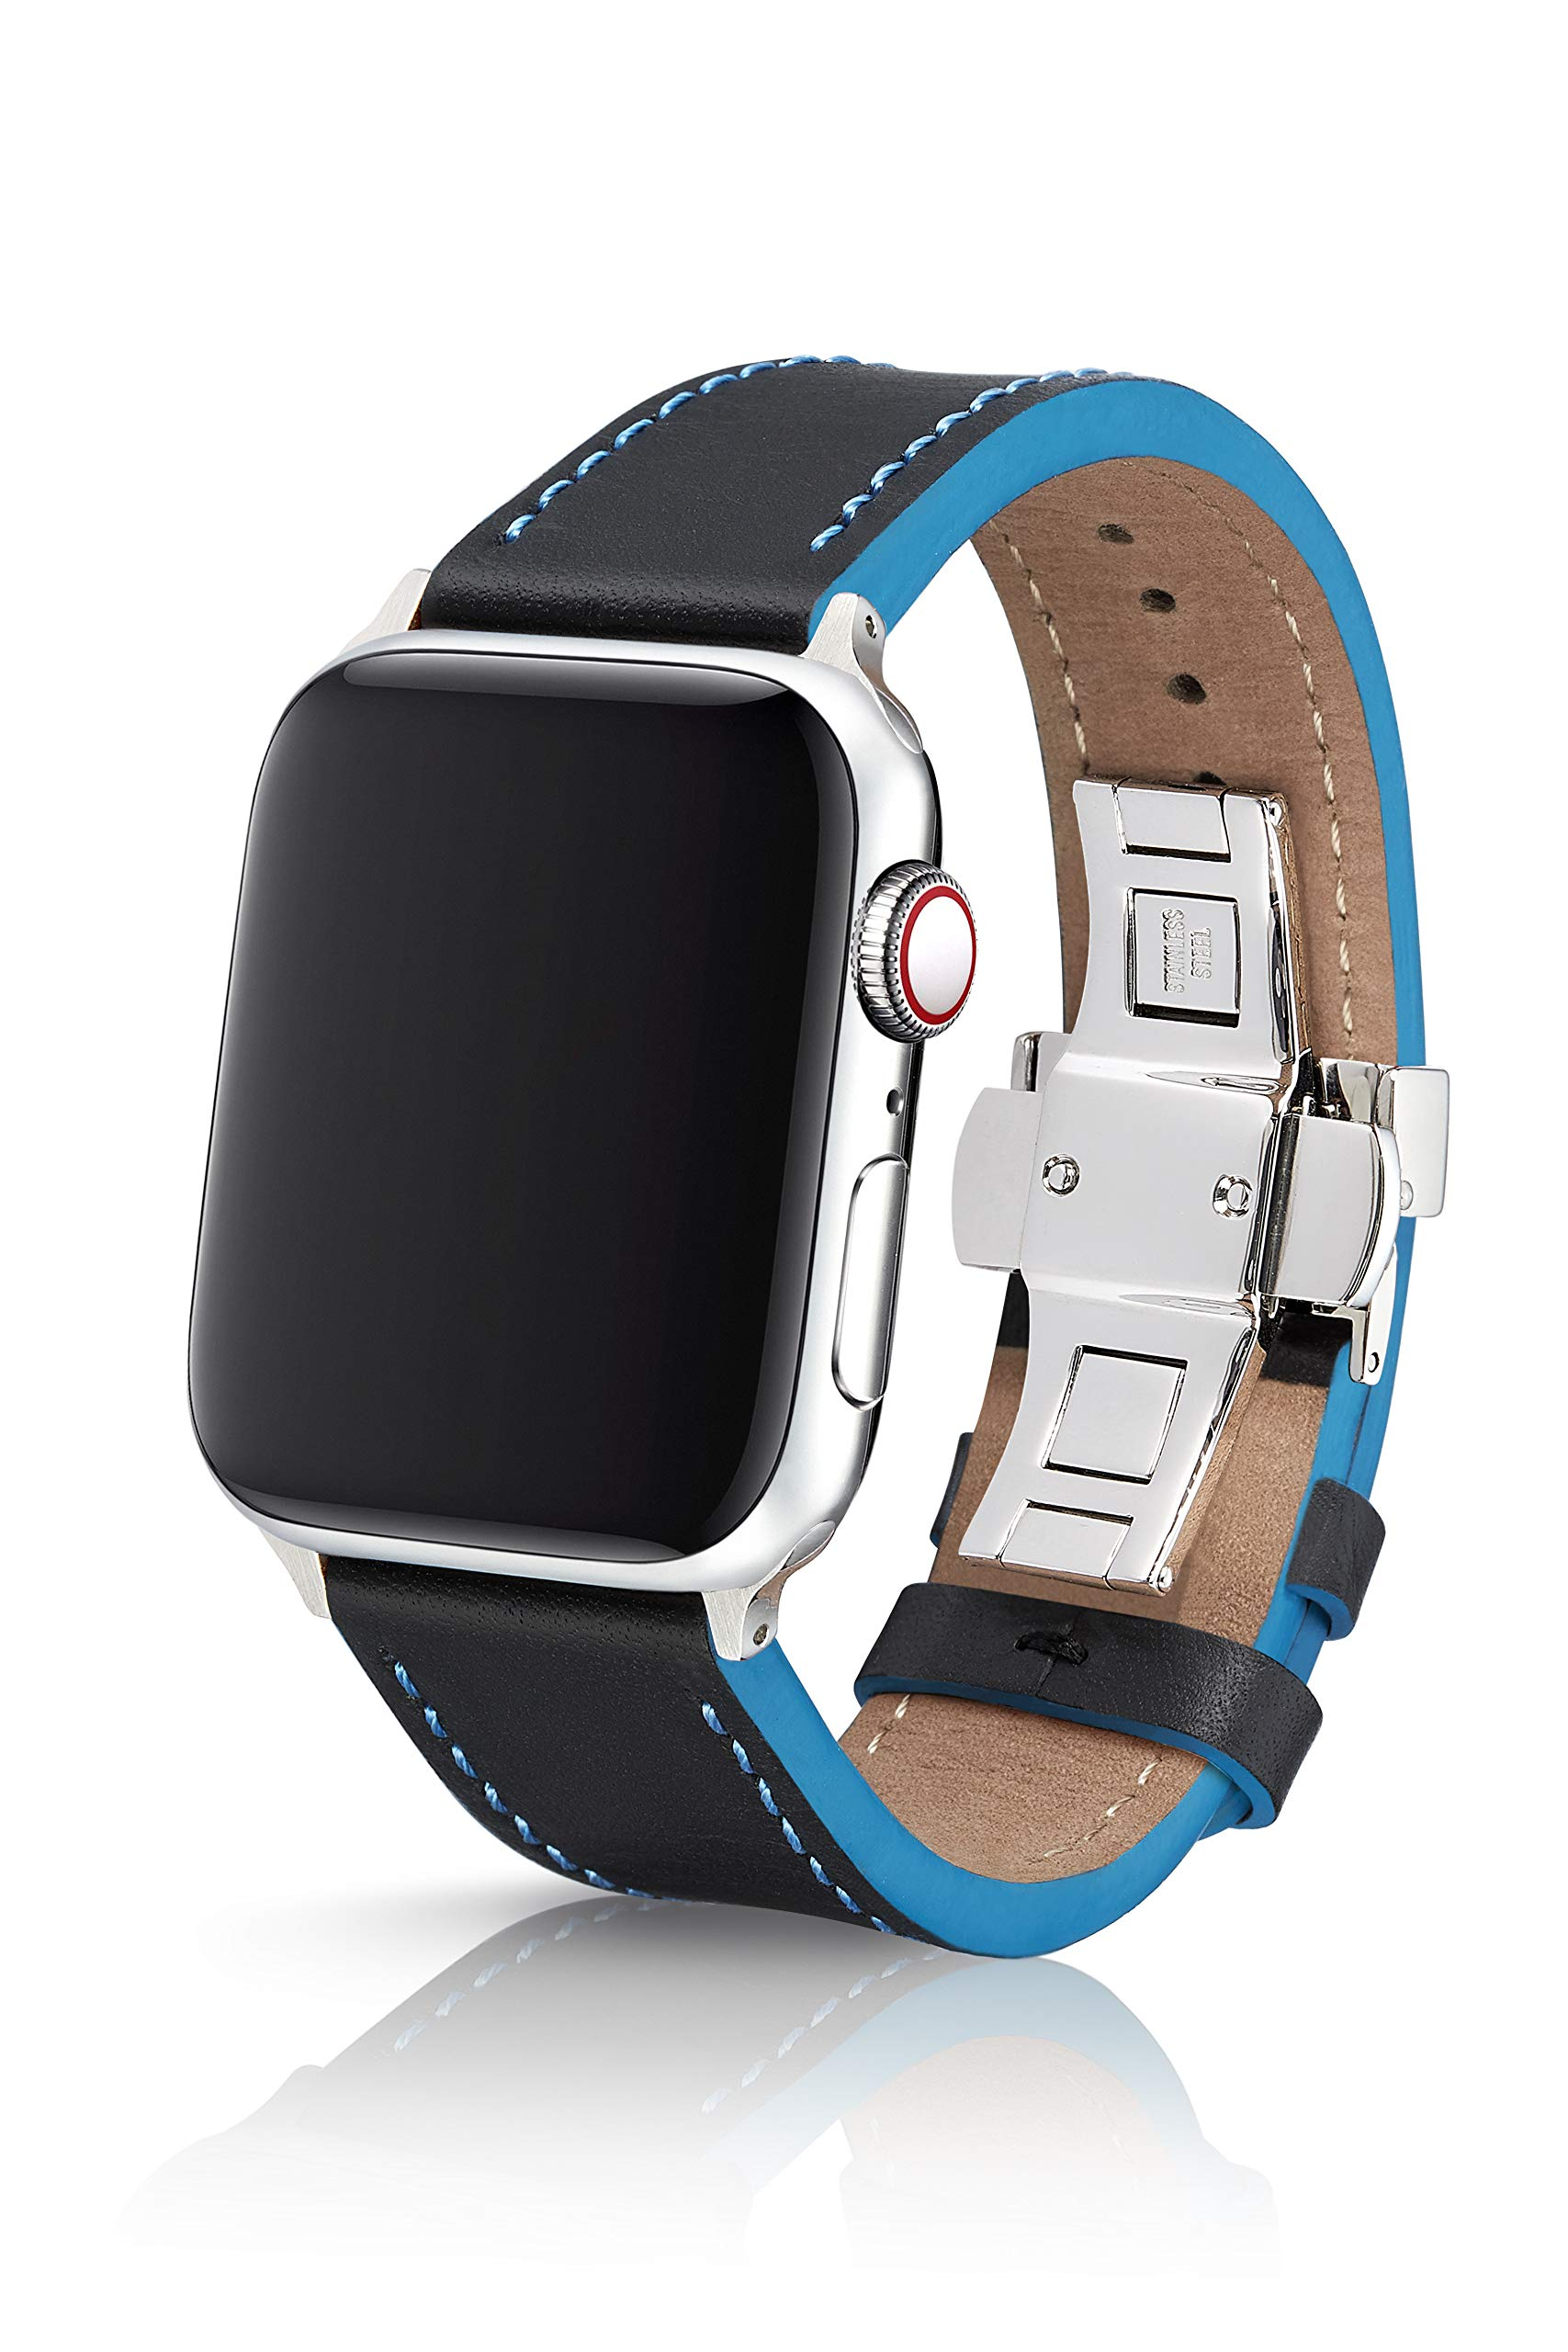 42/44mm JUUK Korza Azur Premium Watch Band Made for The Apple Watch, Made with Genuine Italian Leather with a Solid Stainless Steel deployant Buckle (Silver Components)